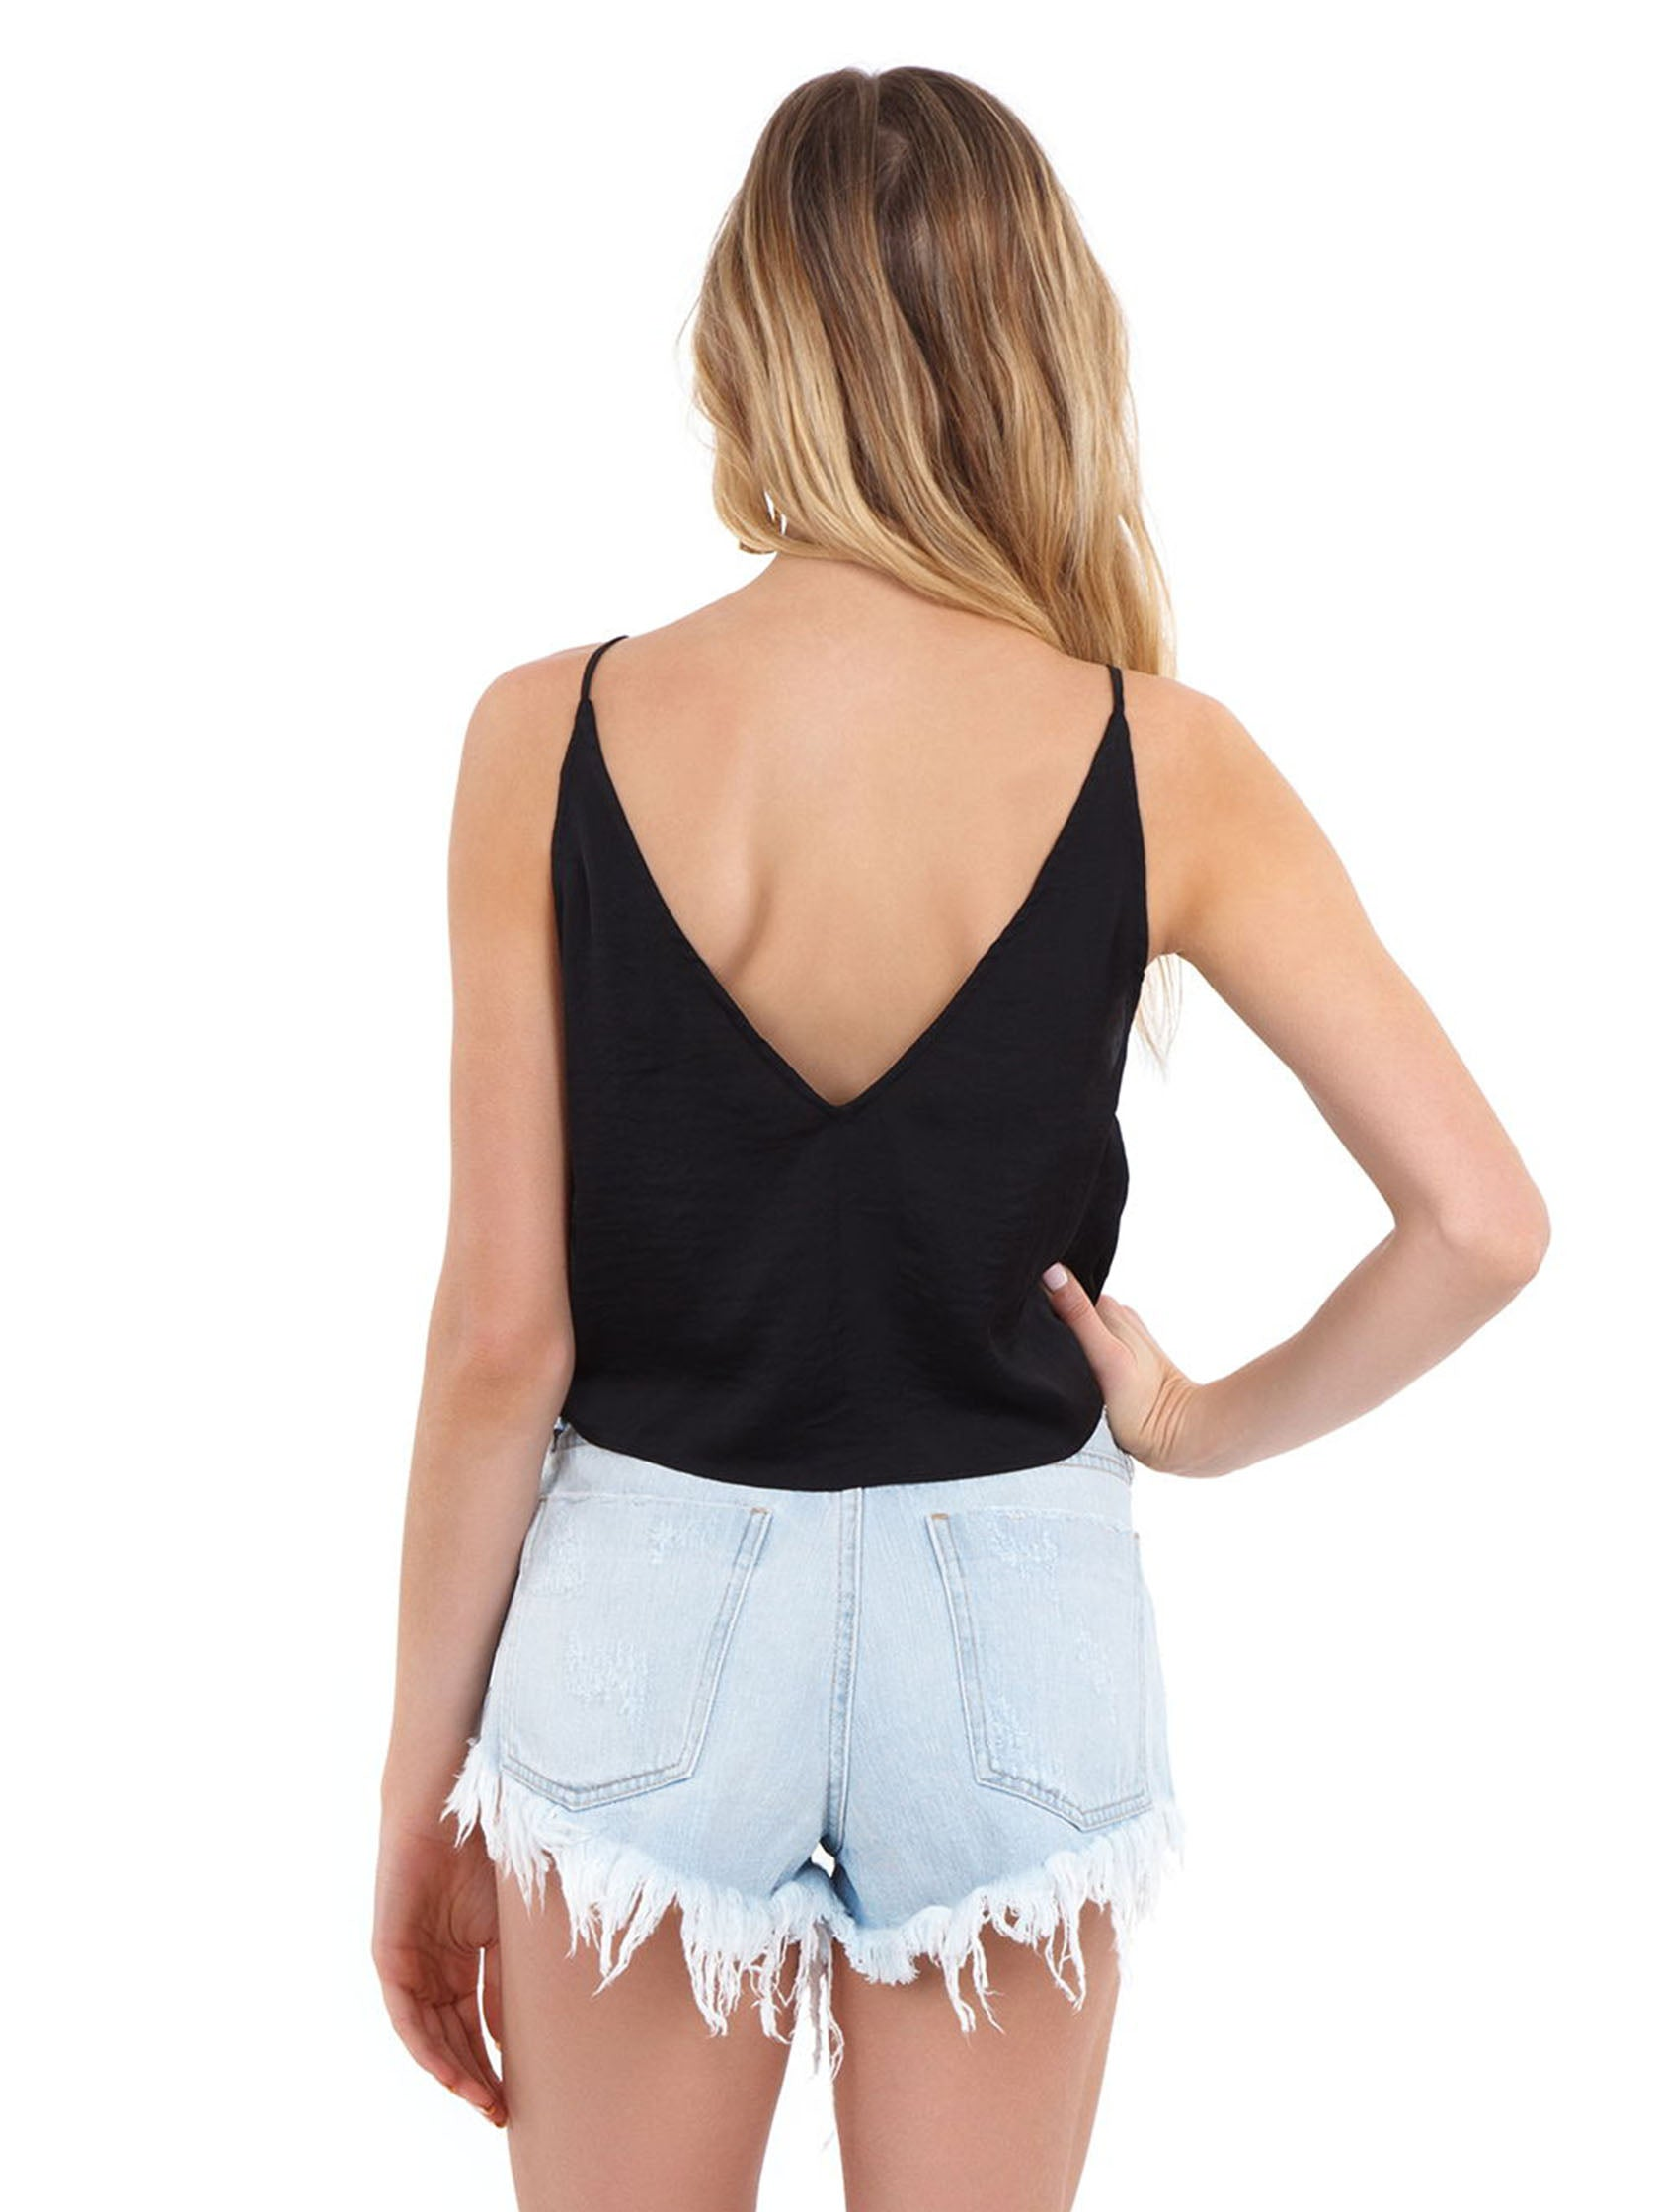 45228d52556 Women wearing a cami rental from Free People called Two Tie For You Brami